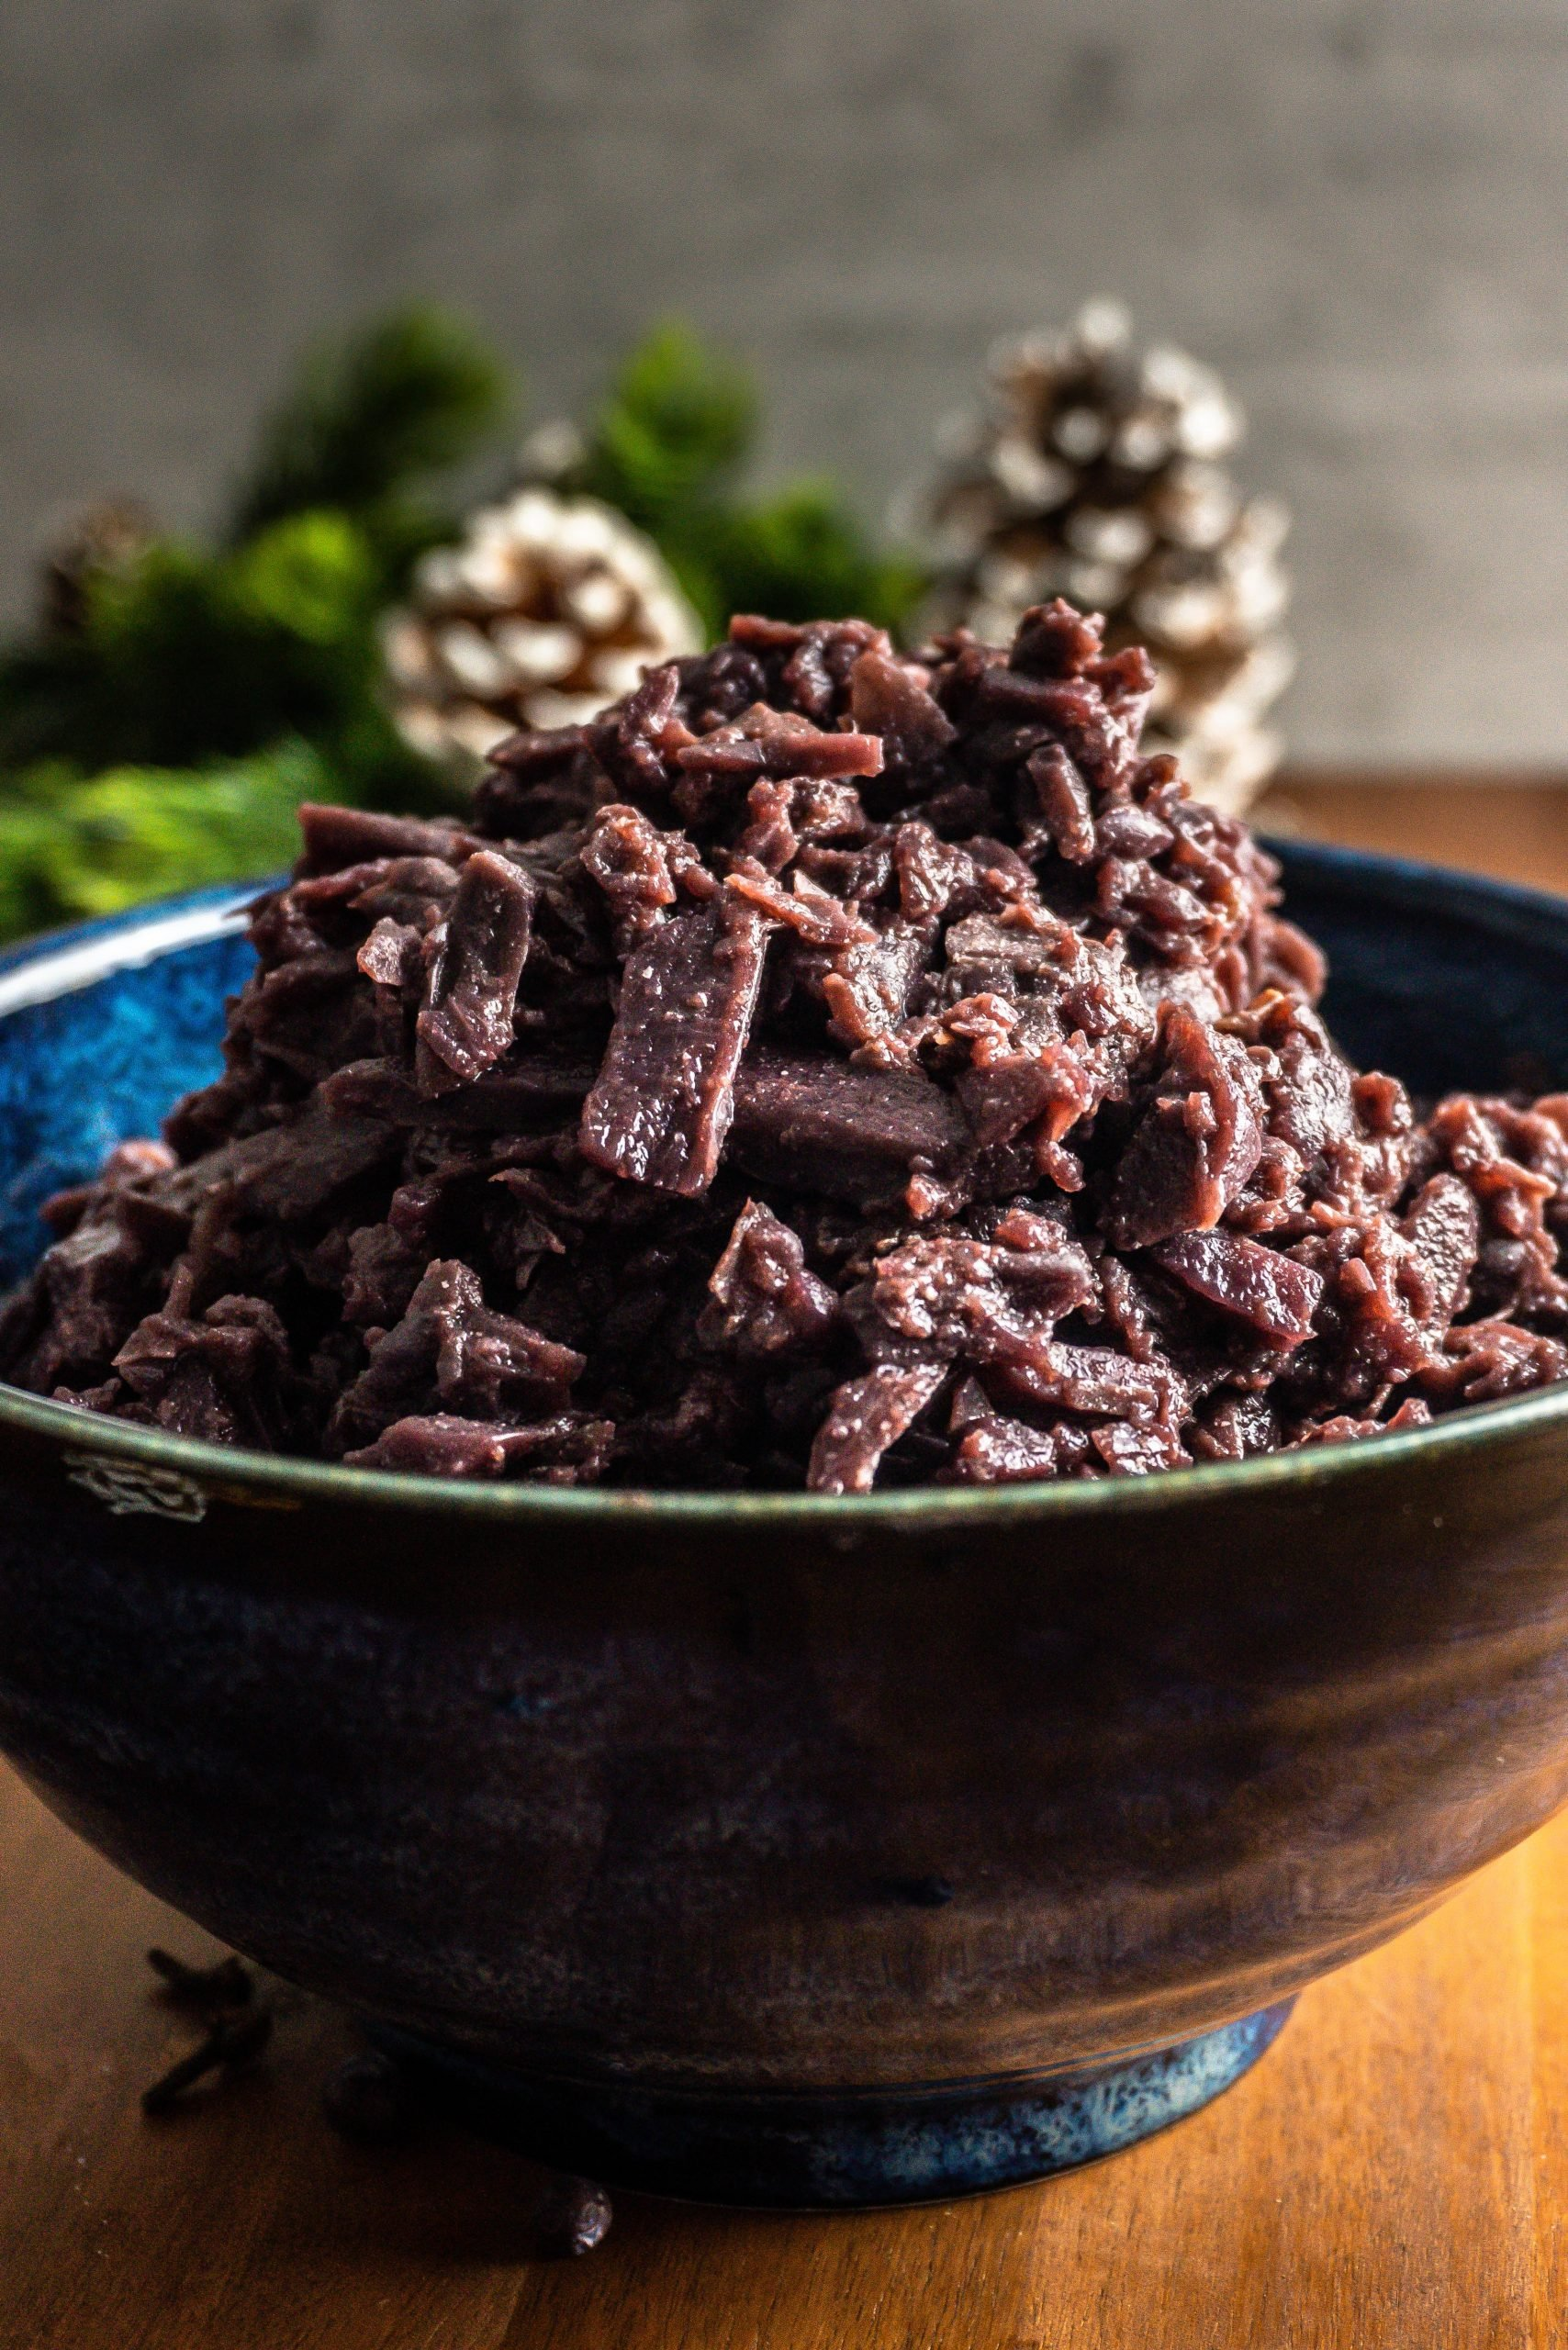 German Red Cabbage (Rotkohl) in a blue bowl on a dark wooden background with dried sliced orange slices, pine cones, cloves, and juniper berries as decoration. Shot up close with the red cabbage in focus